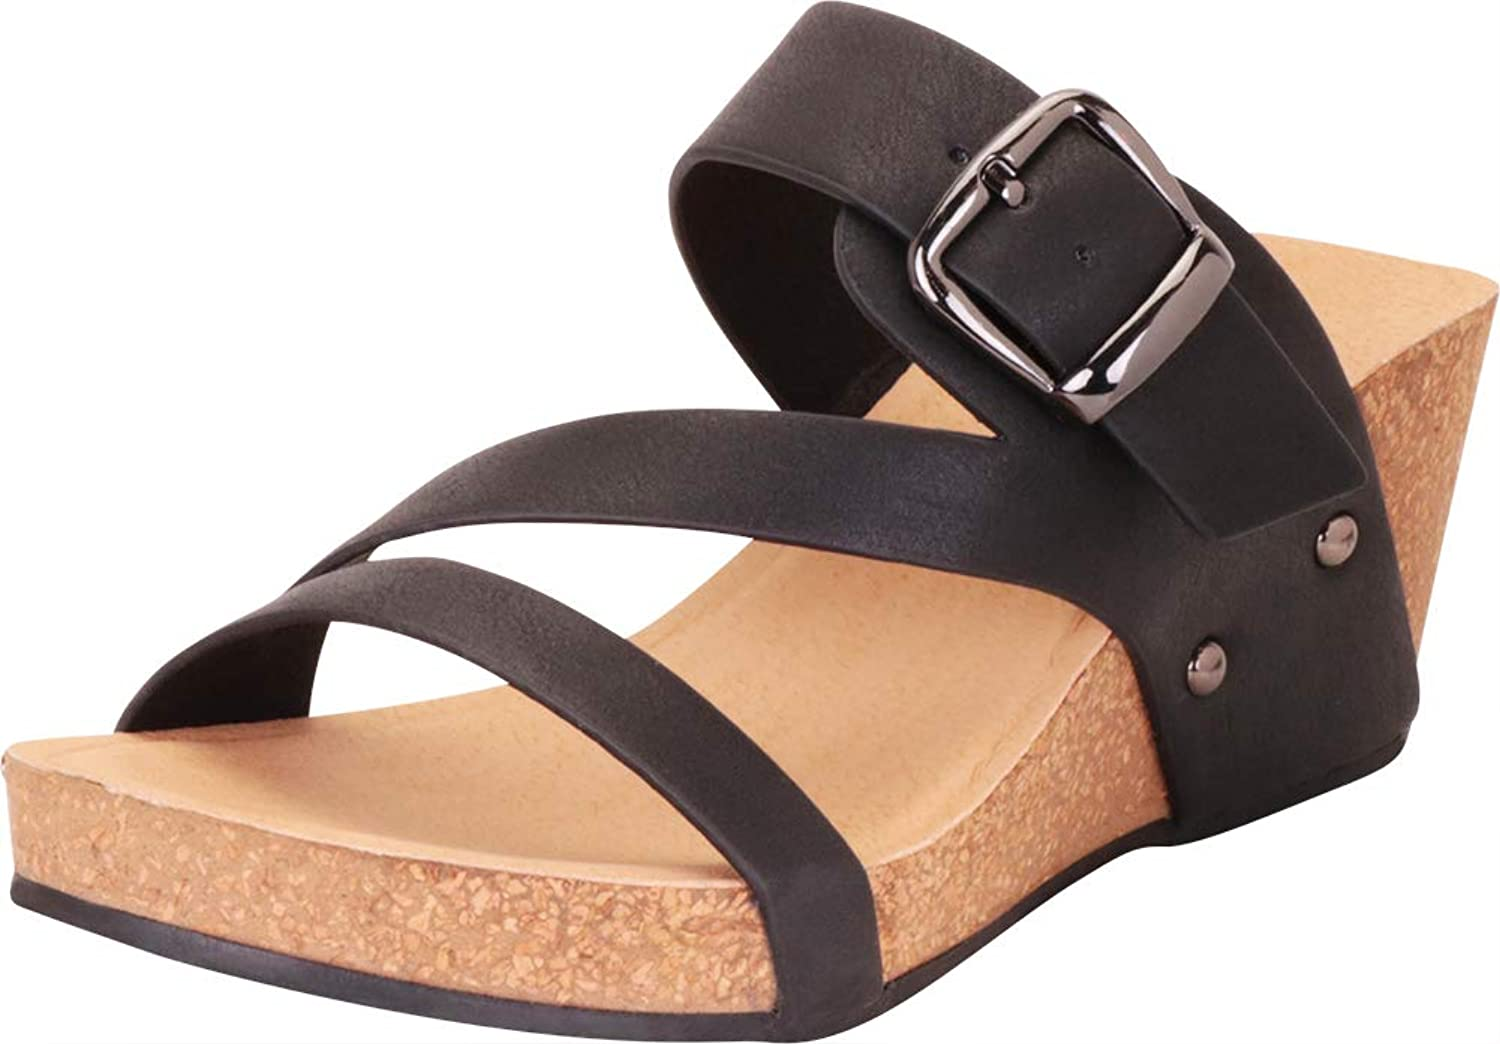 Cambridge Select Women's Credver Strappy Buckle Chunky Platform Mid Wedge Sandal